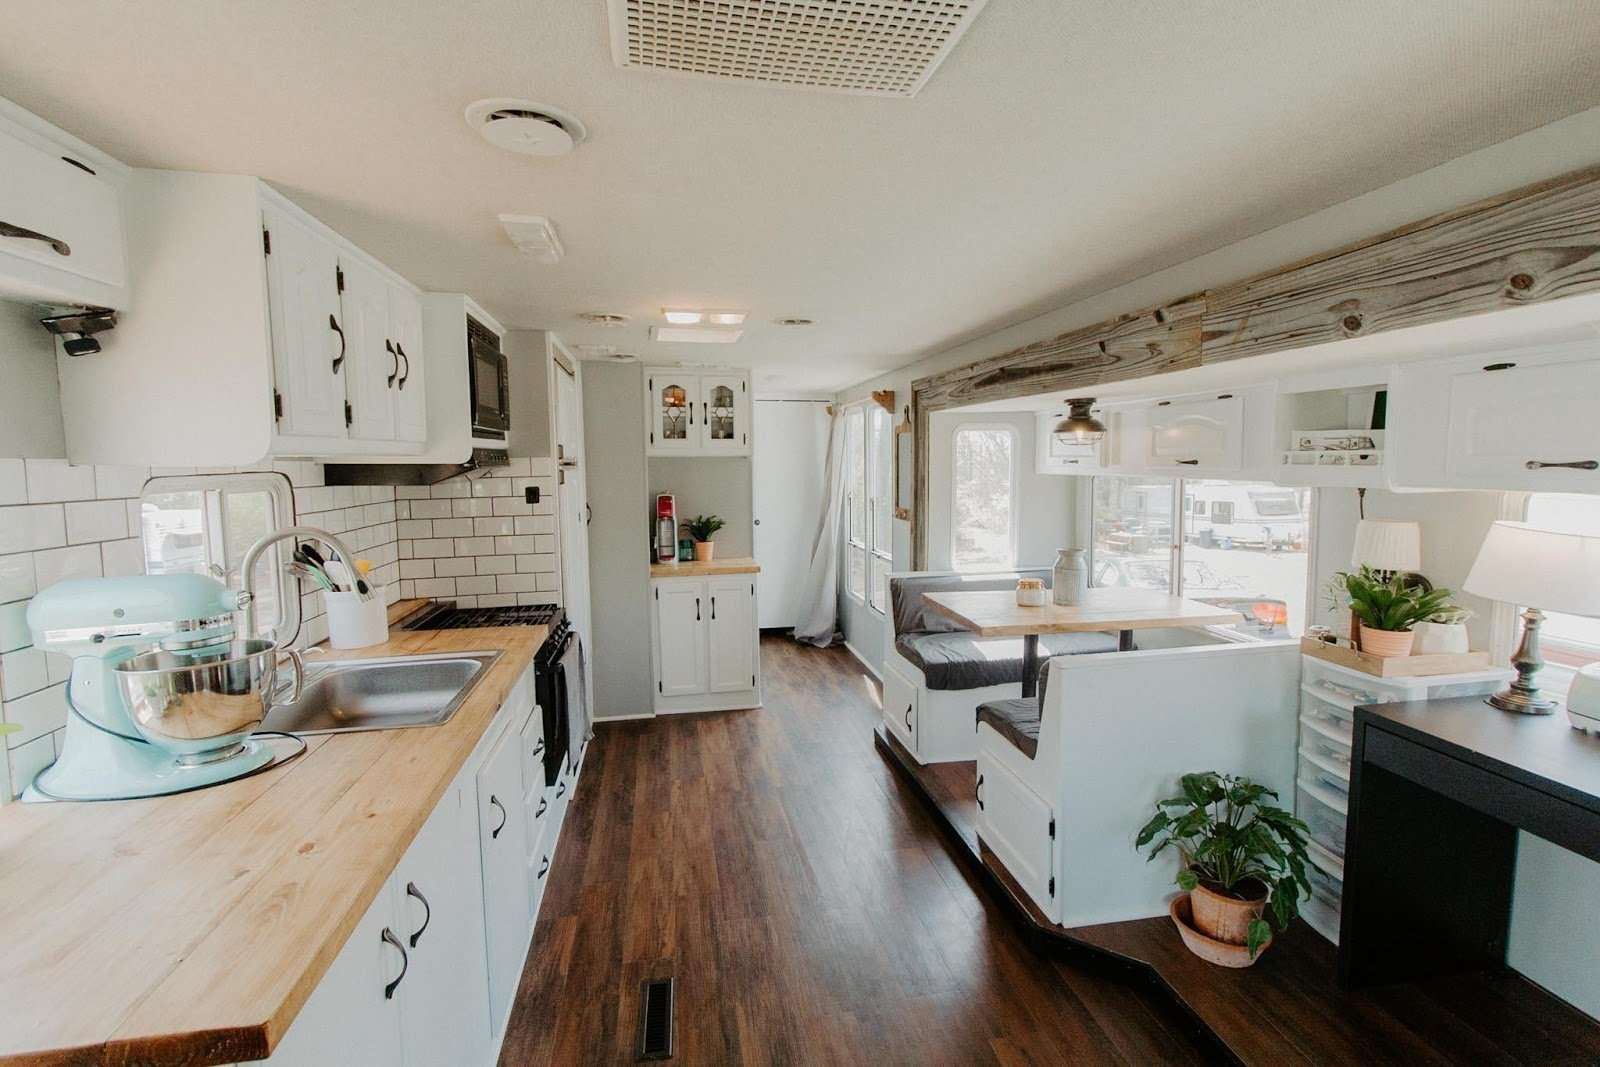 2. Take Inspiration from this budget conscious RV renovation. by simphome.com